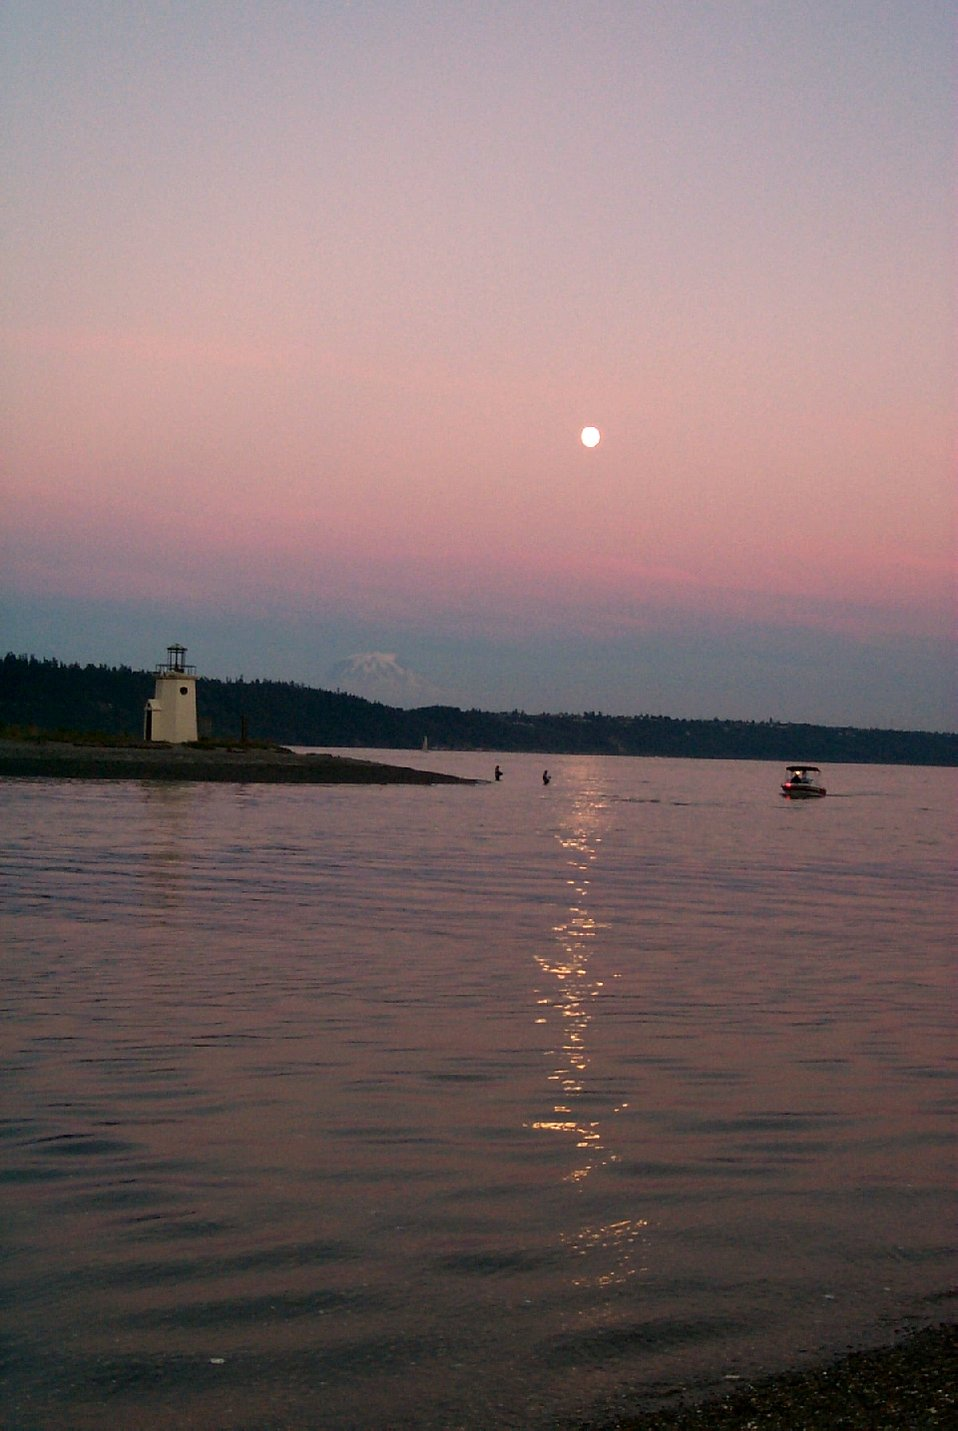 Moonrise over Gig Harbor as salmon fishermen try their luck in the shallows off the spit. Mt. Rainier is visible in the left center.